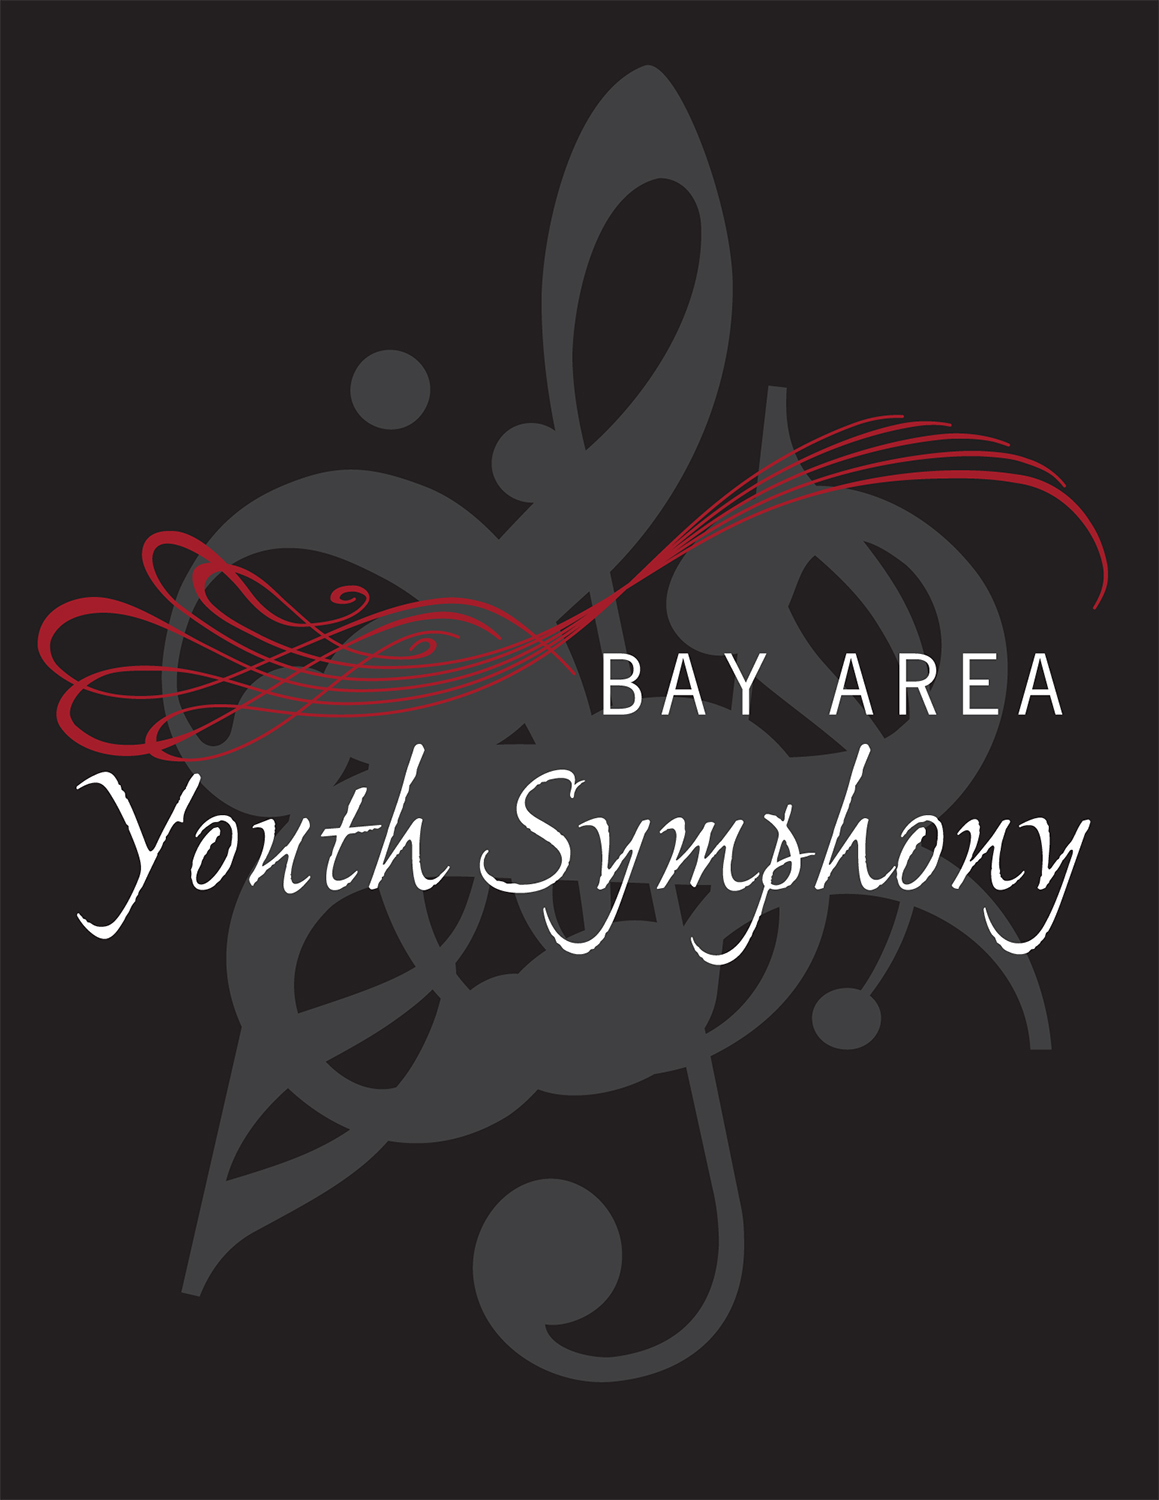 Bay Area Youth Symphony t-shirt design